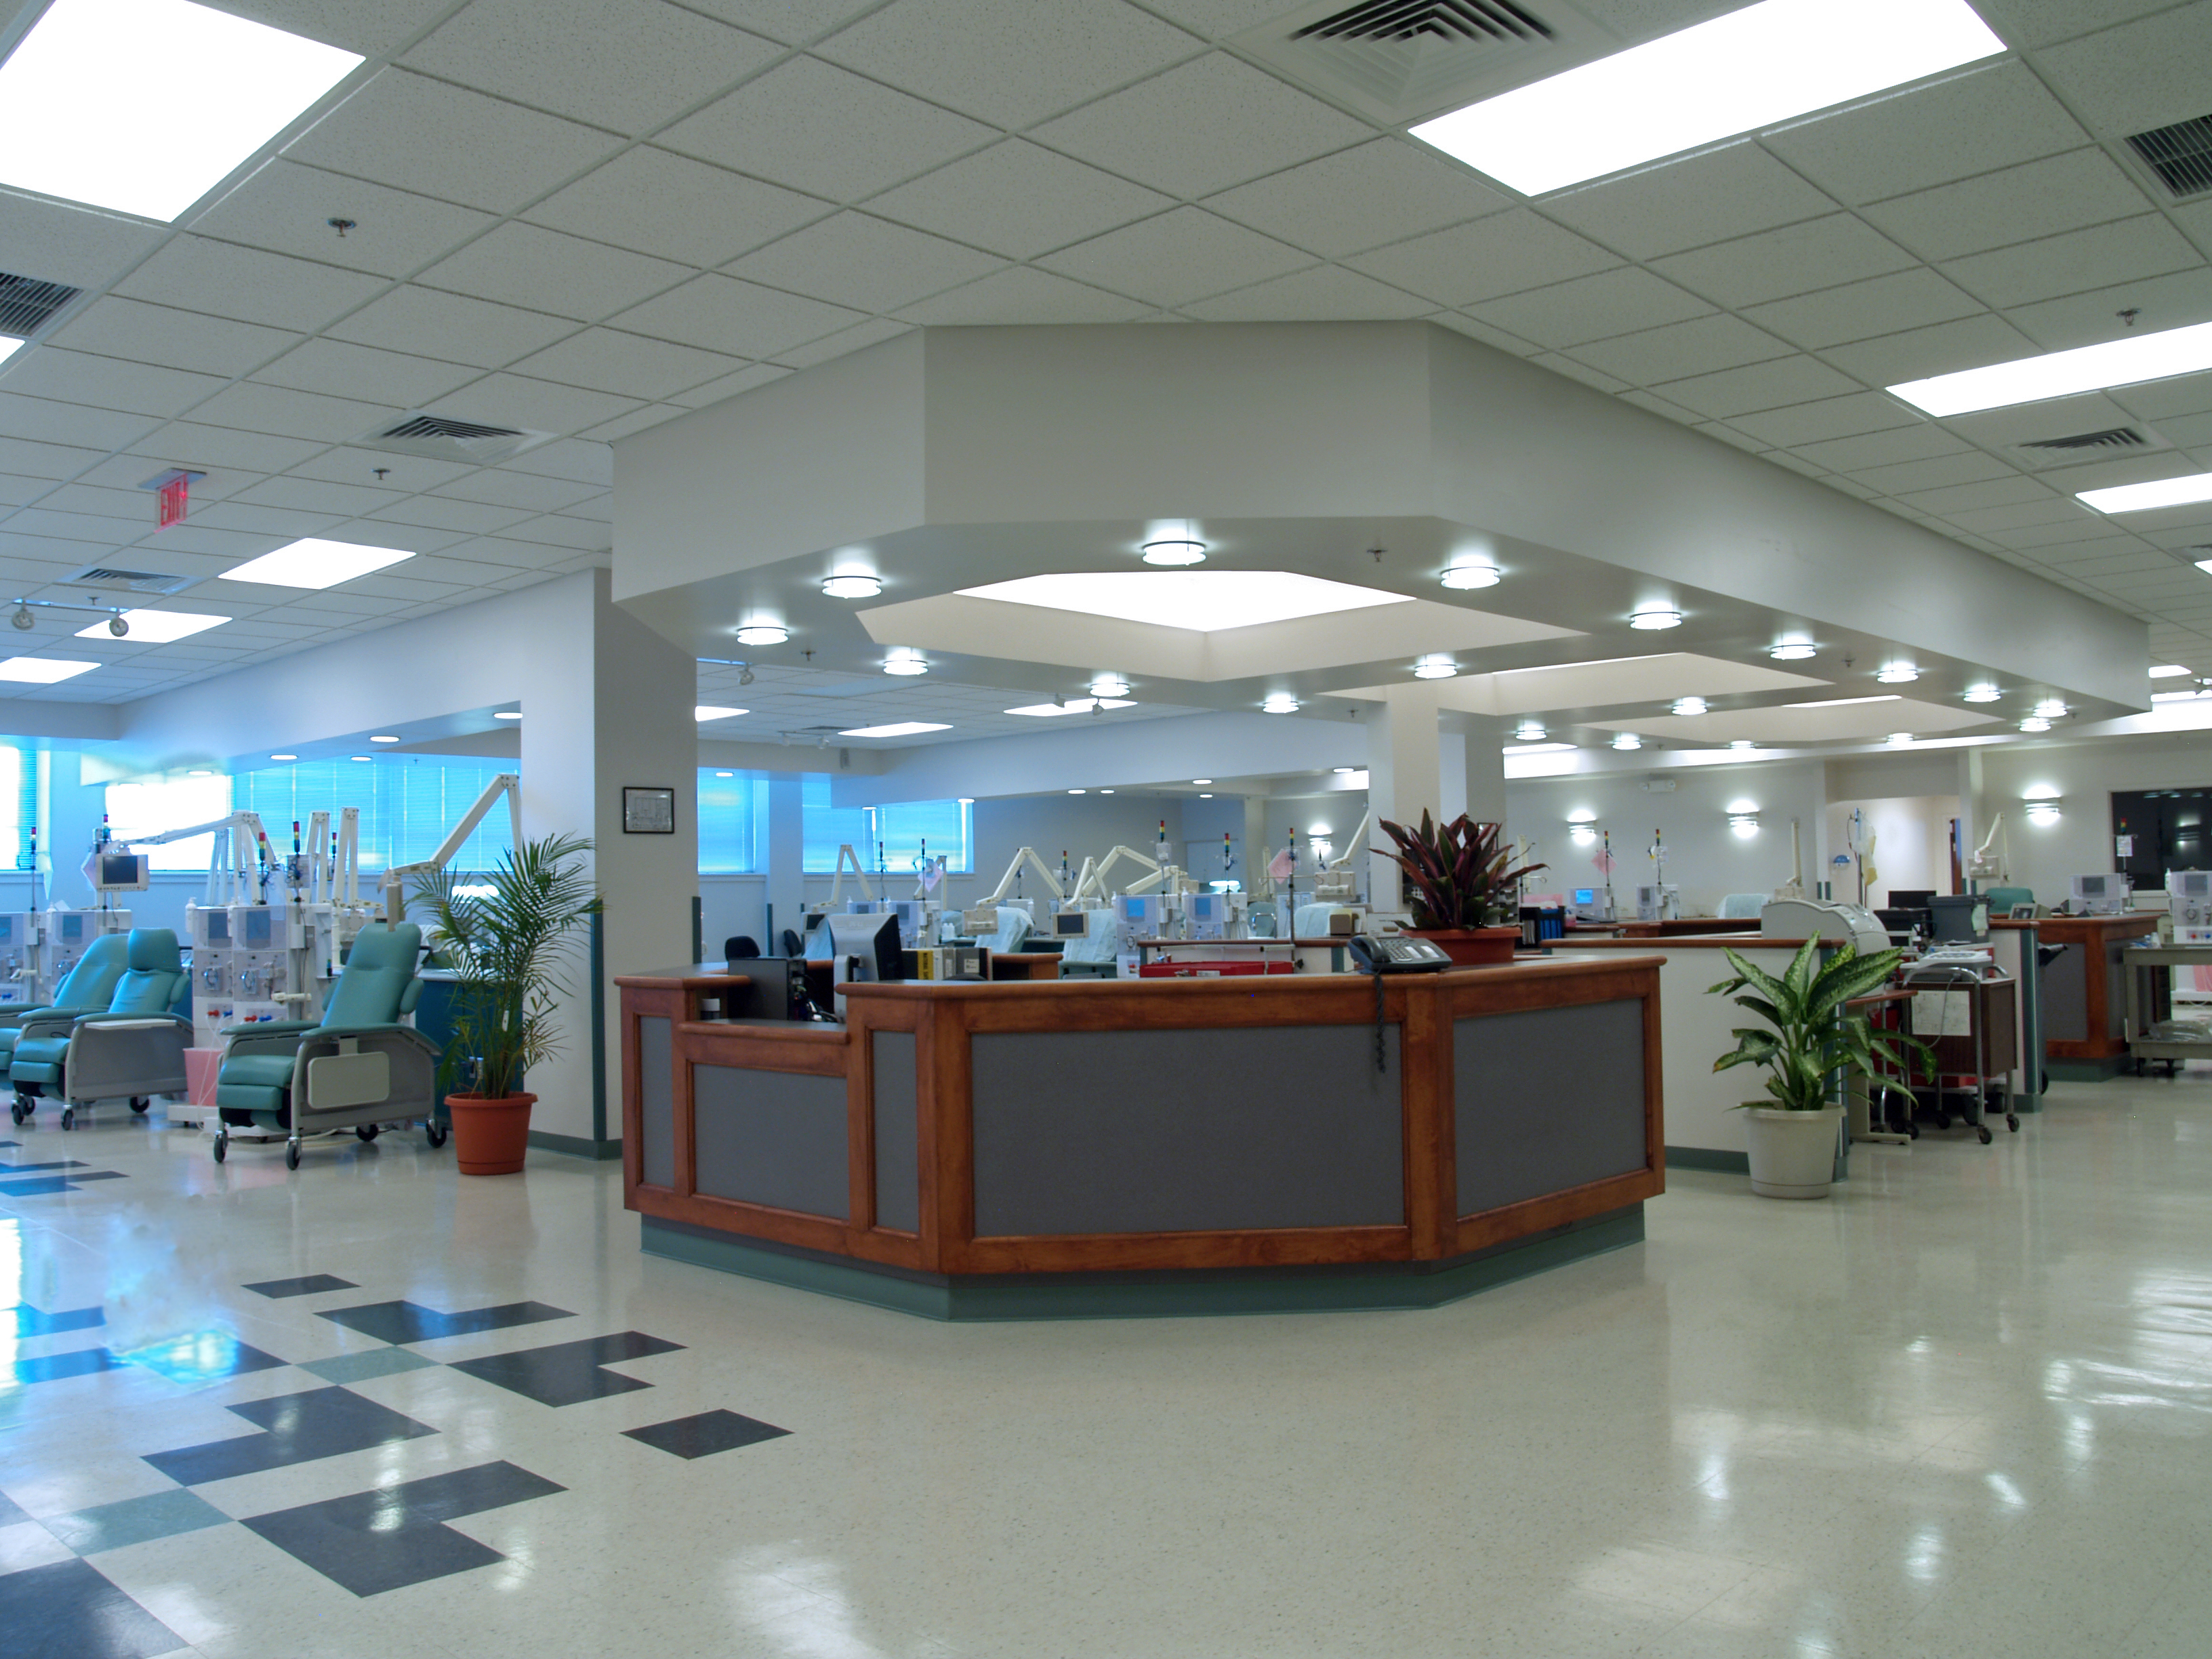 Medical equipment hospital equipment hospital medical equipment - Dialysis Center On The Level With Gardner Fox